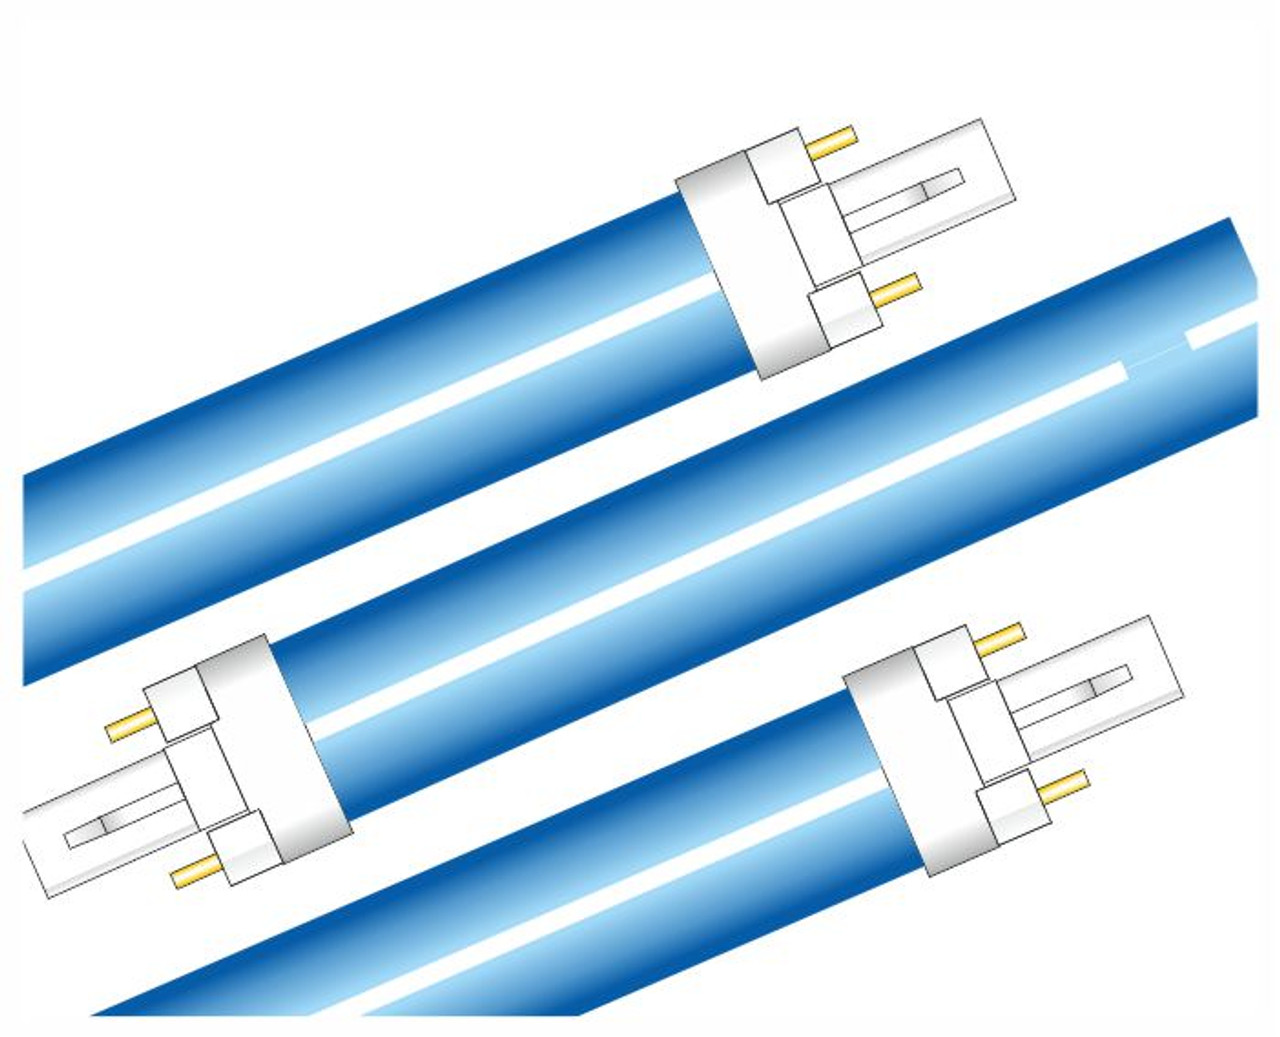 Fabulous Tmc Single Ended Replacement Uv Lamps Wiring Digital Resources Indicompassionincorg